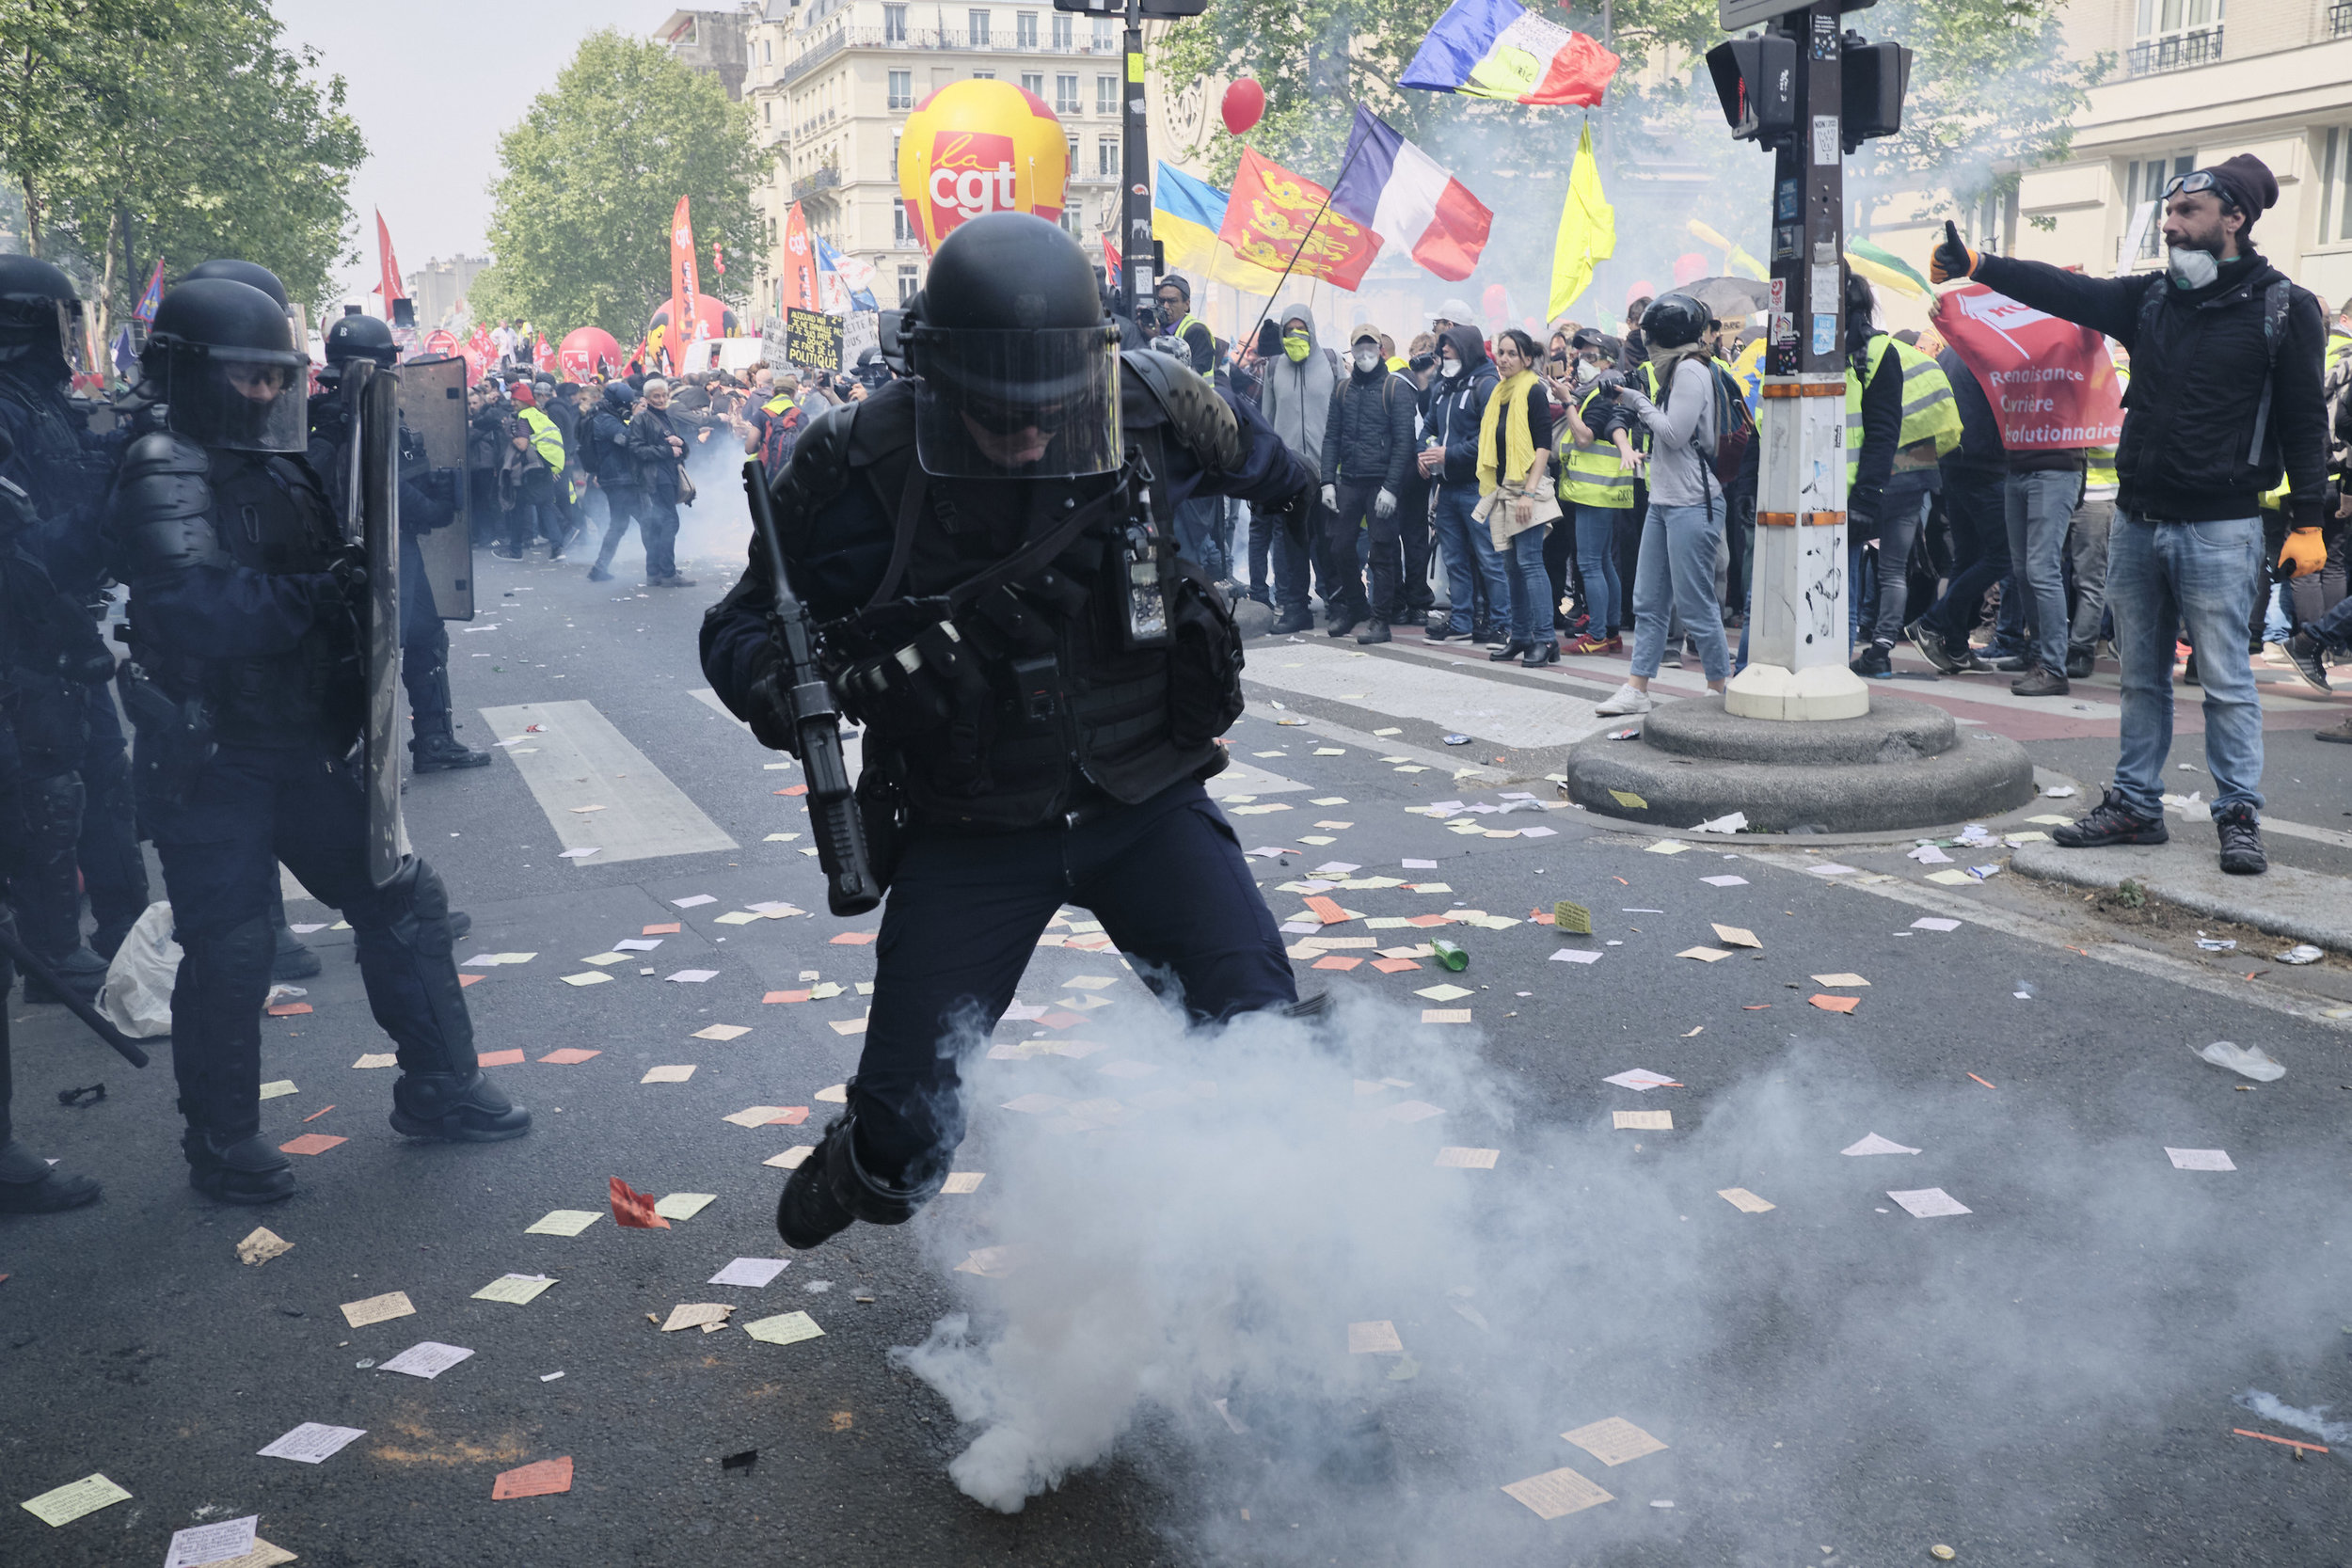 Police officer kicking a tear gas grenade back at the crowd of protesters at Boulevard du Montparnasse after it has been thrown back at them shortly after an attempt to control the crowd.